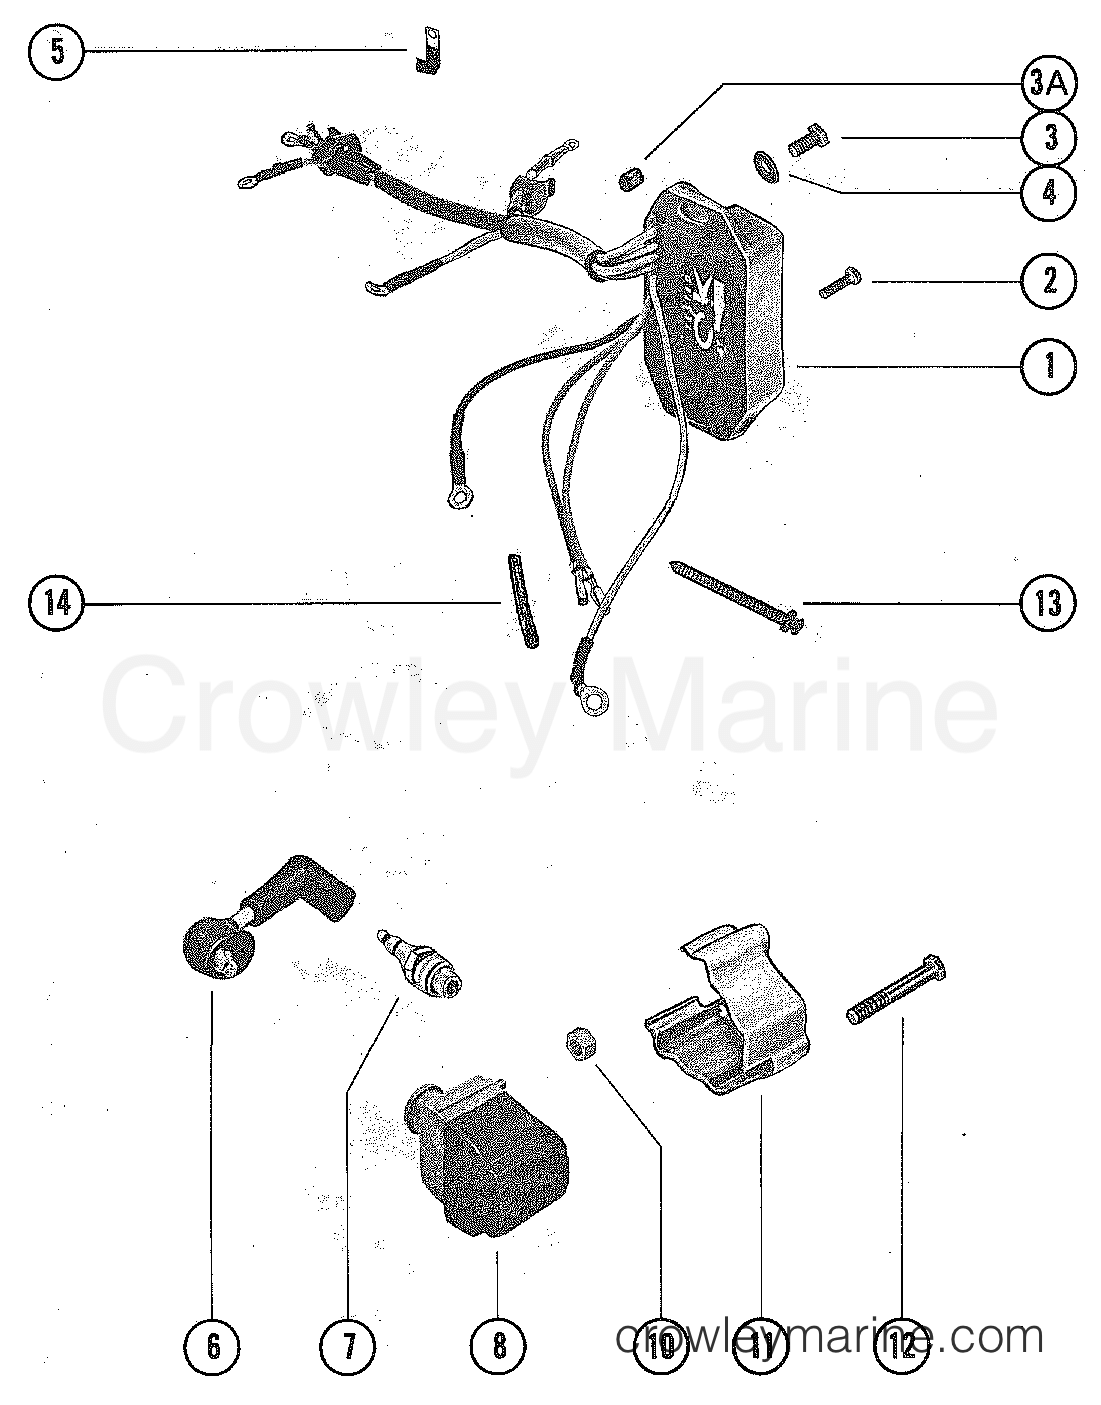 mercury outboard 1040206 switch box and ignition coil diagram and